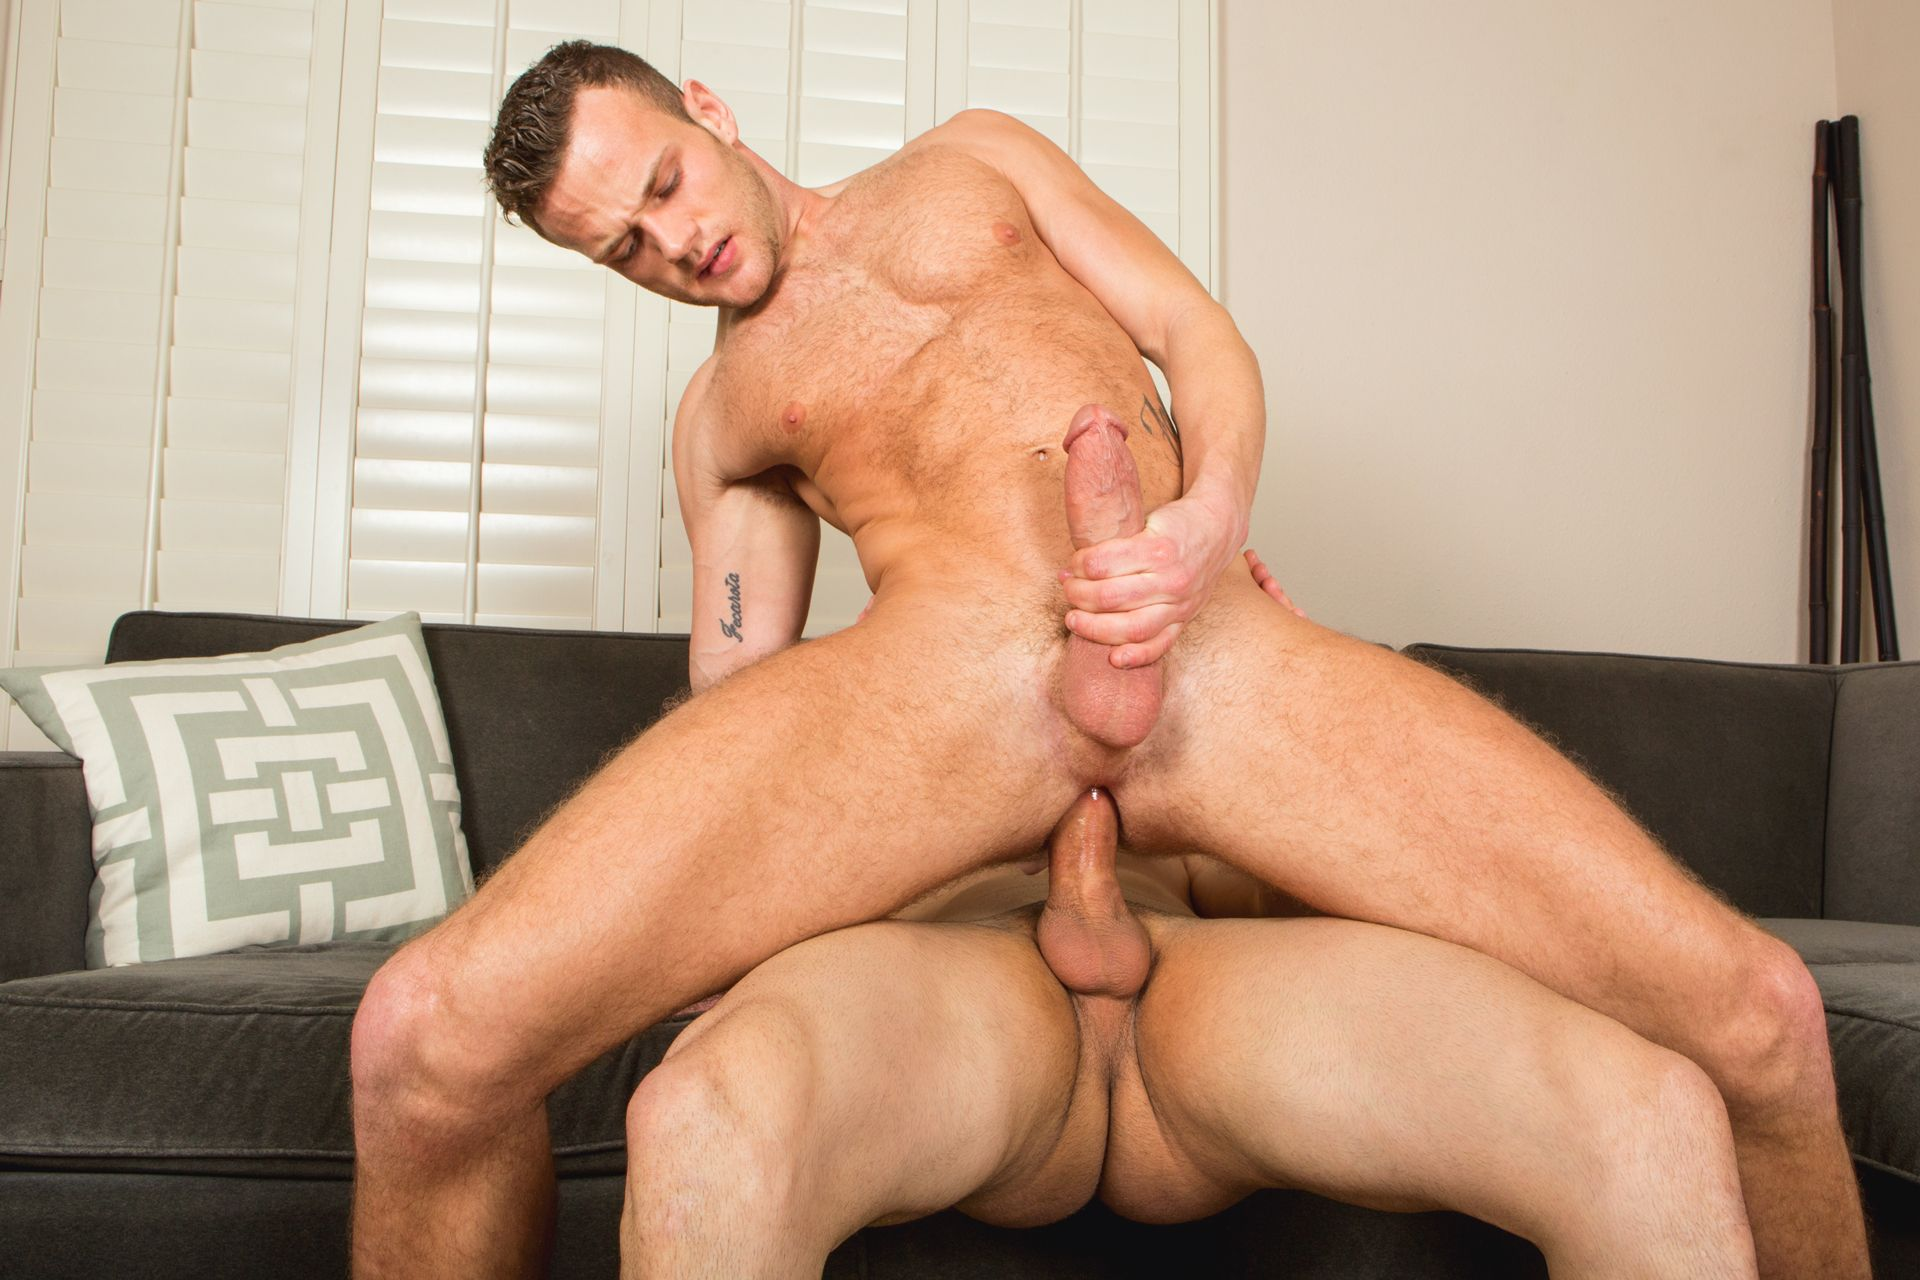 Randy Sean flipfuck bareback gay hot daddy dude men porn